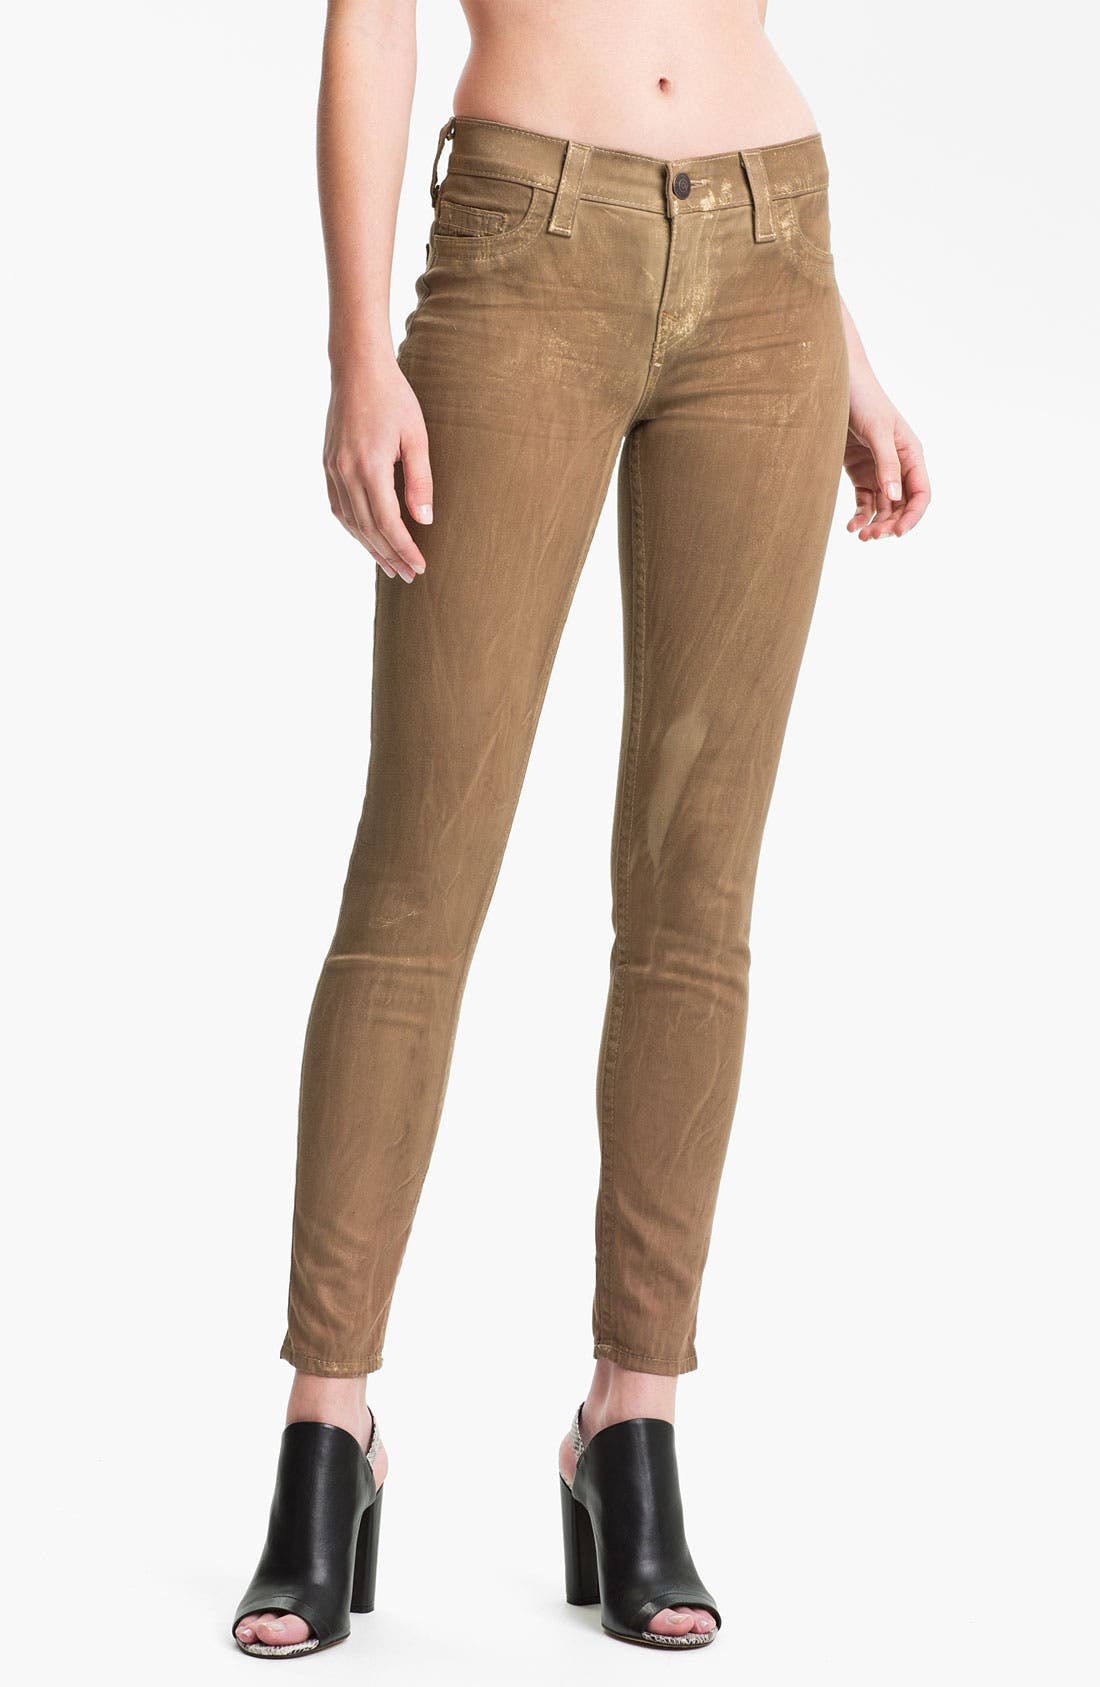 Main Image - True Religion Brand Jeans 'Halle' Skinny Stretch Jeans (Metallic Gold)